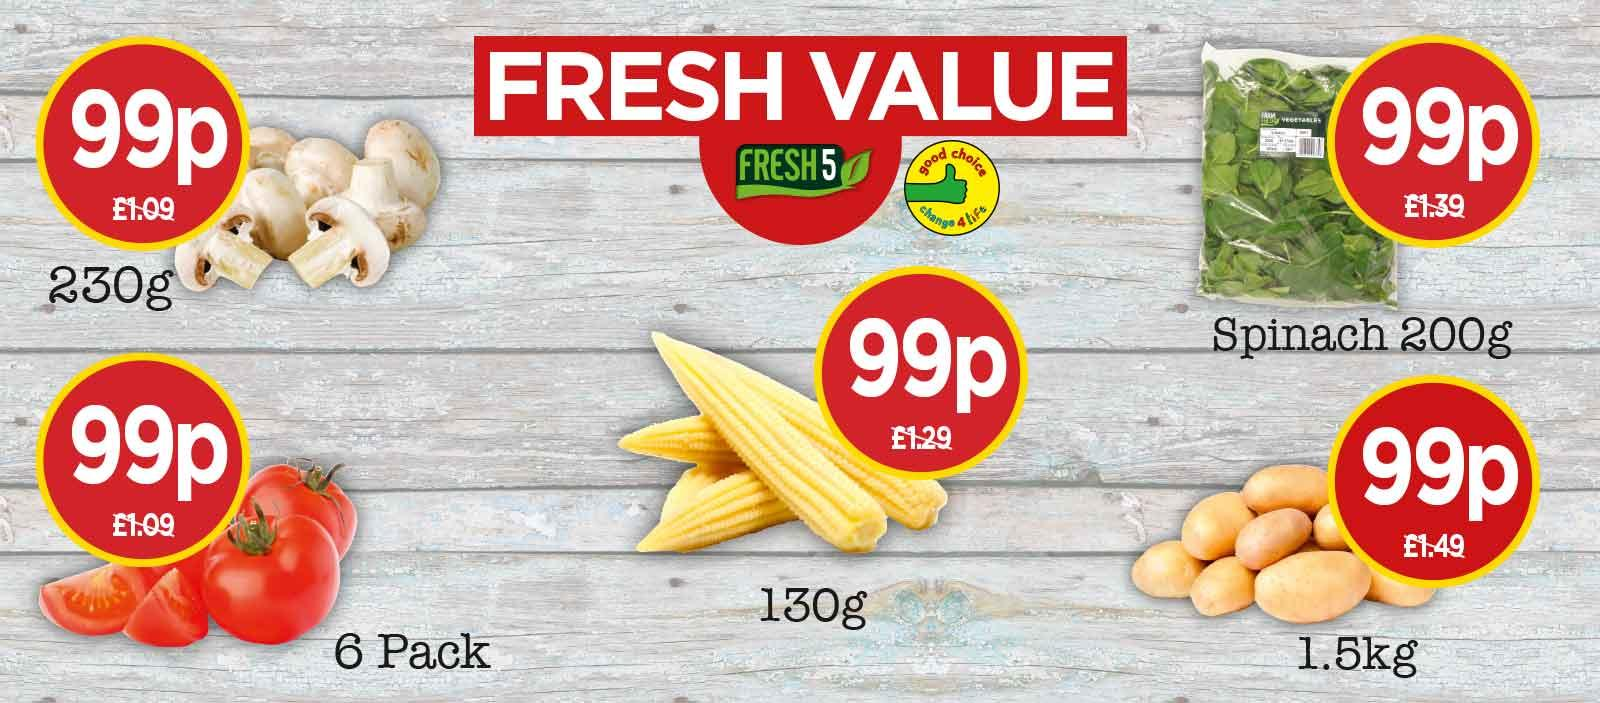 FRESH 5: Farm Fresh Chestnut Mushrooms, Babycorn, Salad Tomatoes, Baby Spinach, Mini Roasting Potatoes - Fresh Value at Budgens